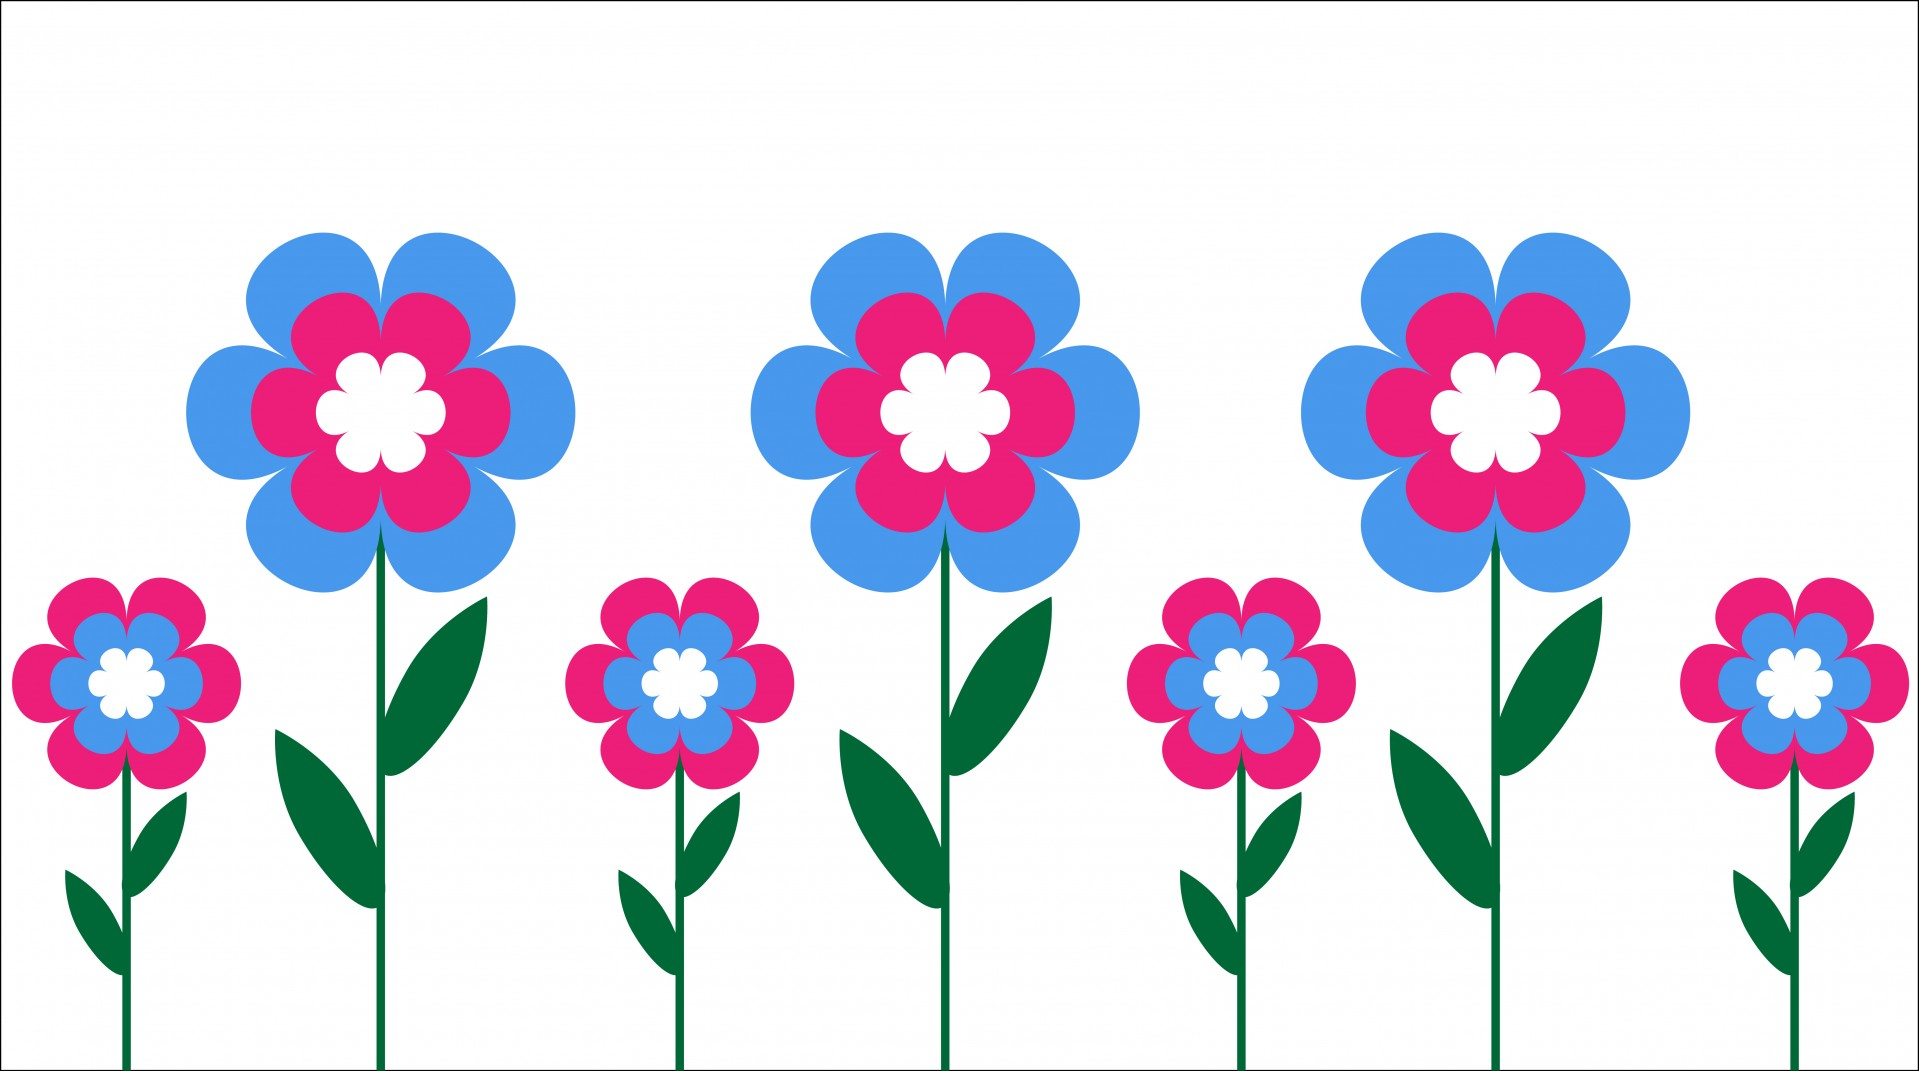 Flower petals clipart at getdrawings free for personal use 1919x1071 top 81 flowers clip art mightylinksfo